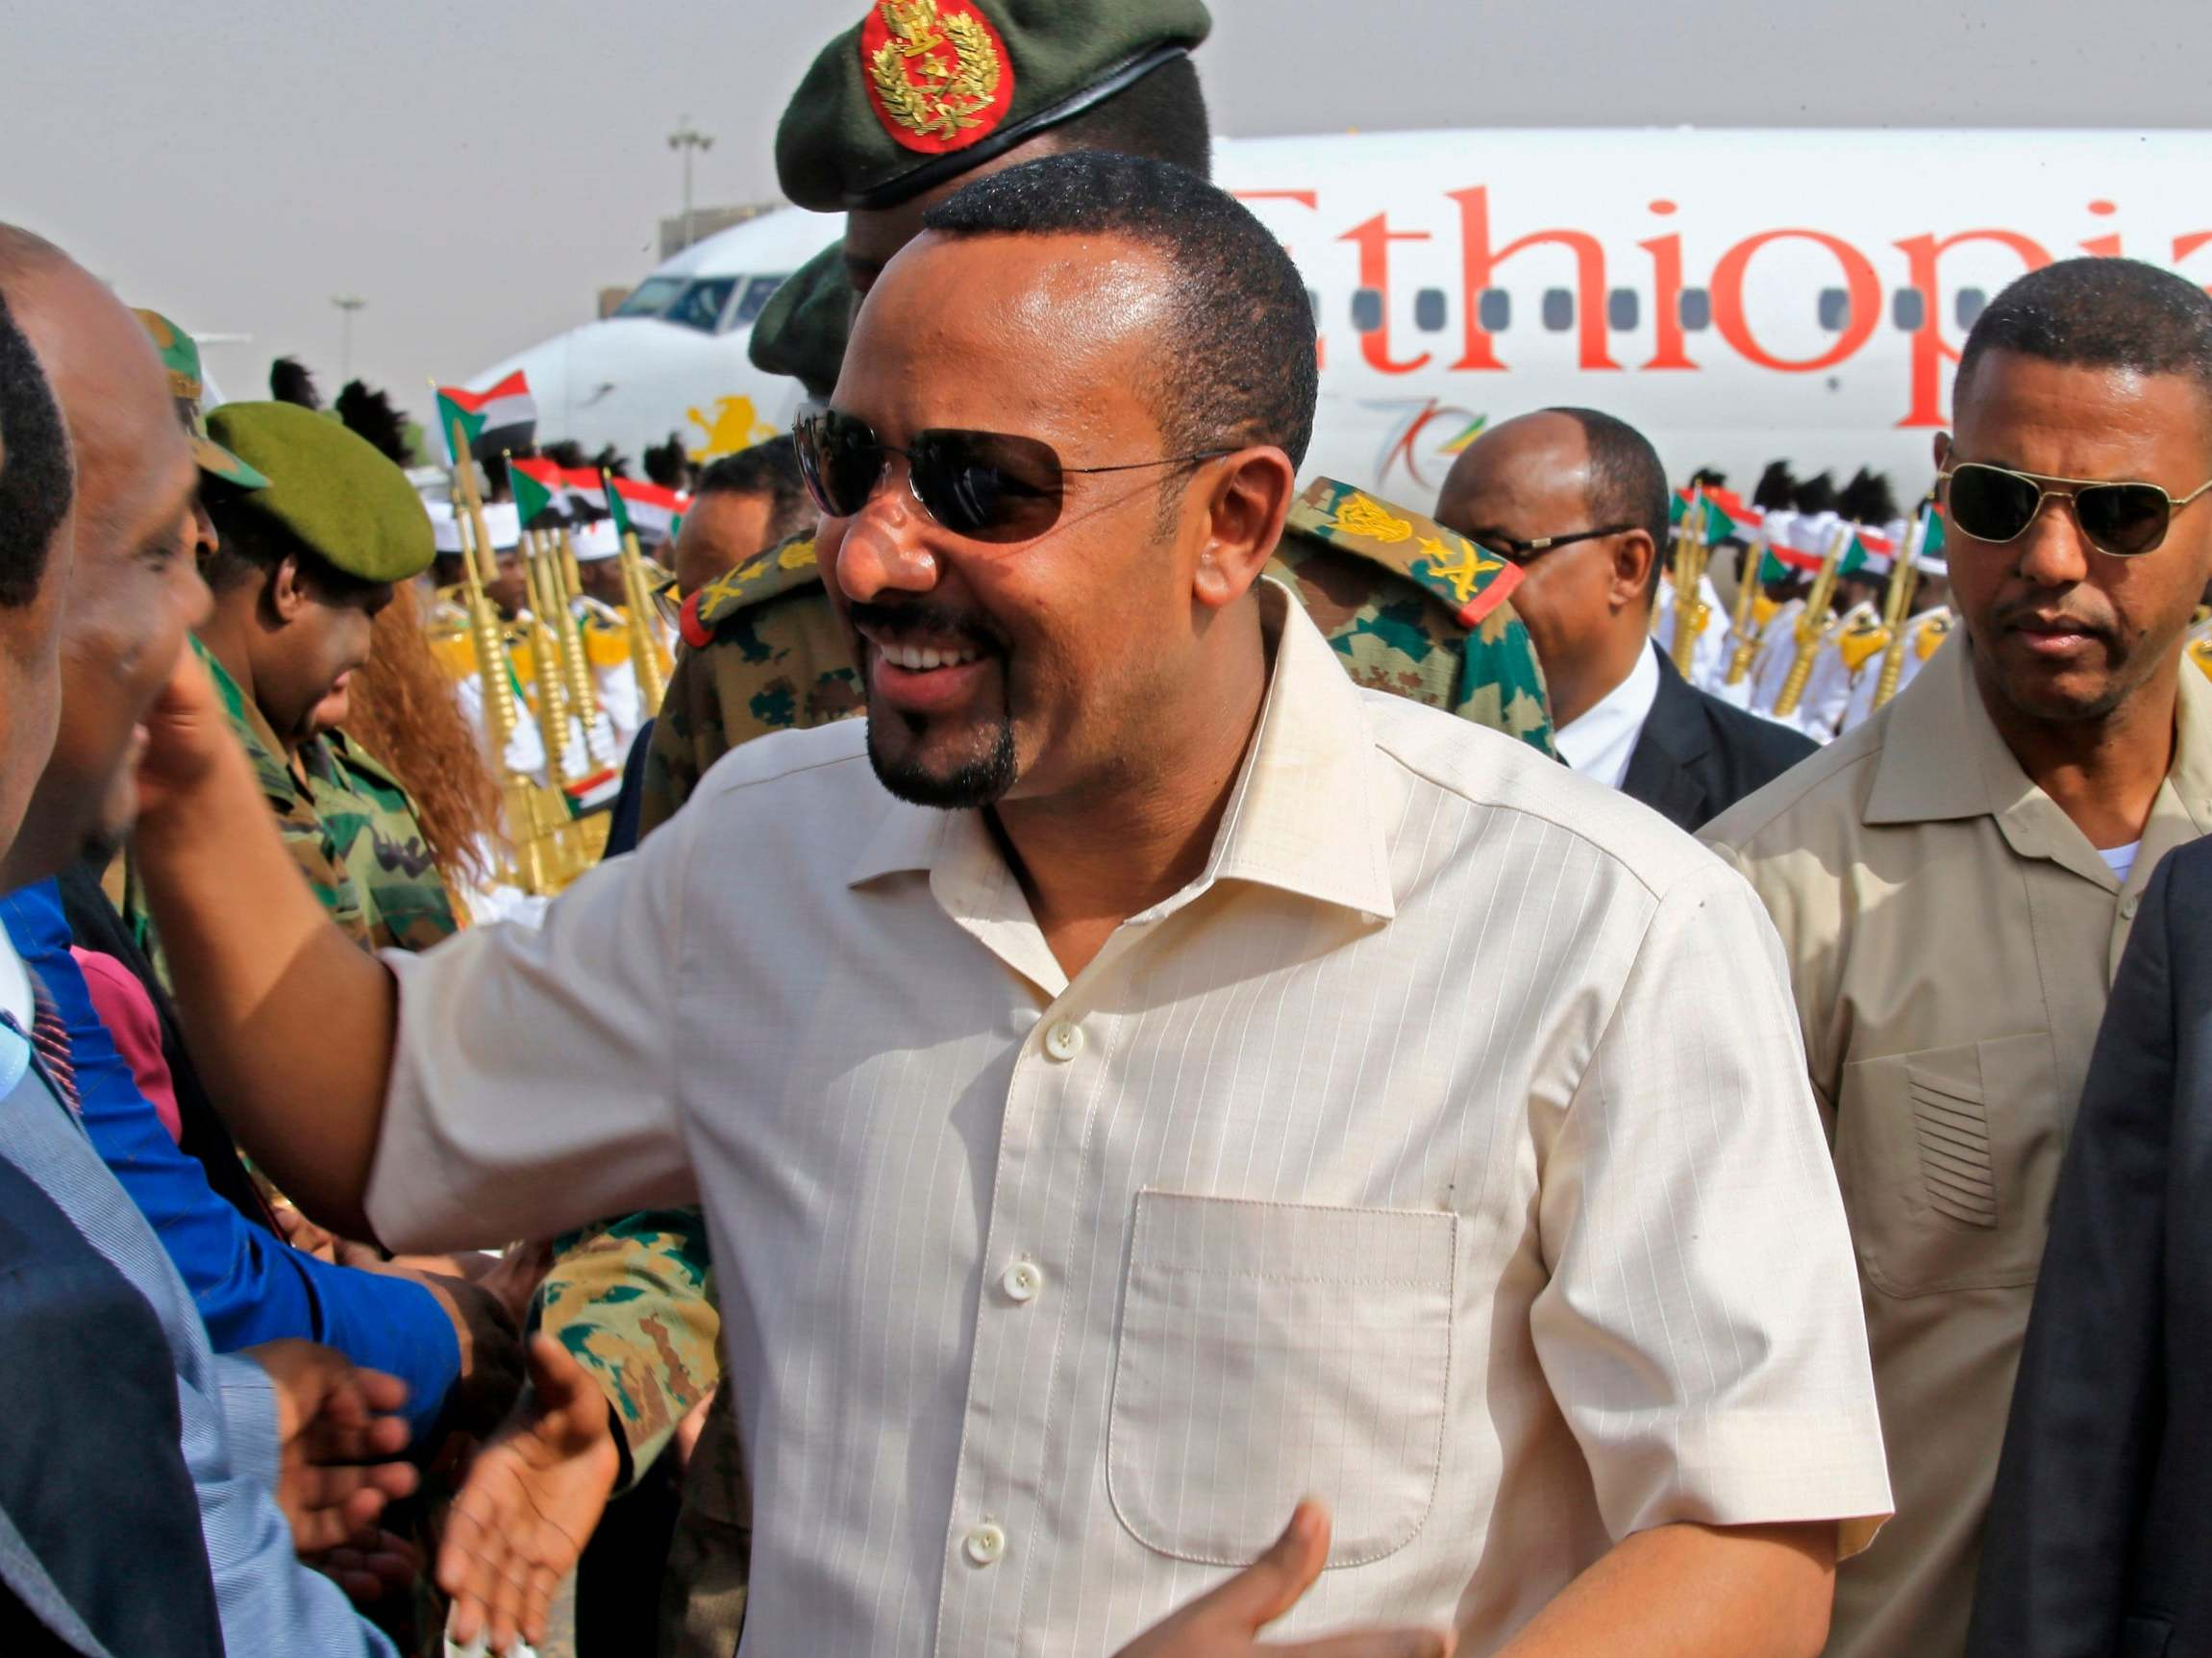 Ethiopia - latest news, breaking stories and comment - The